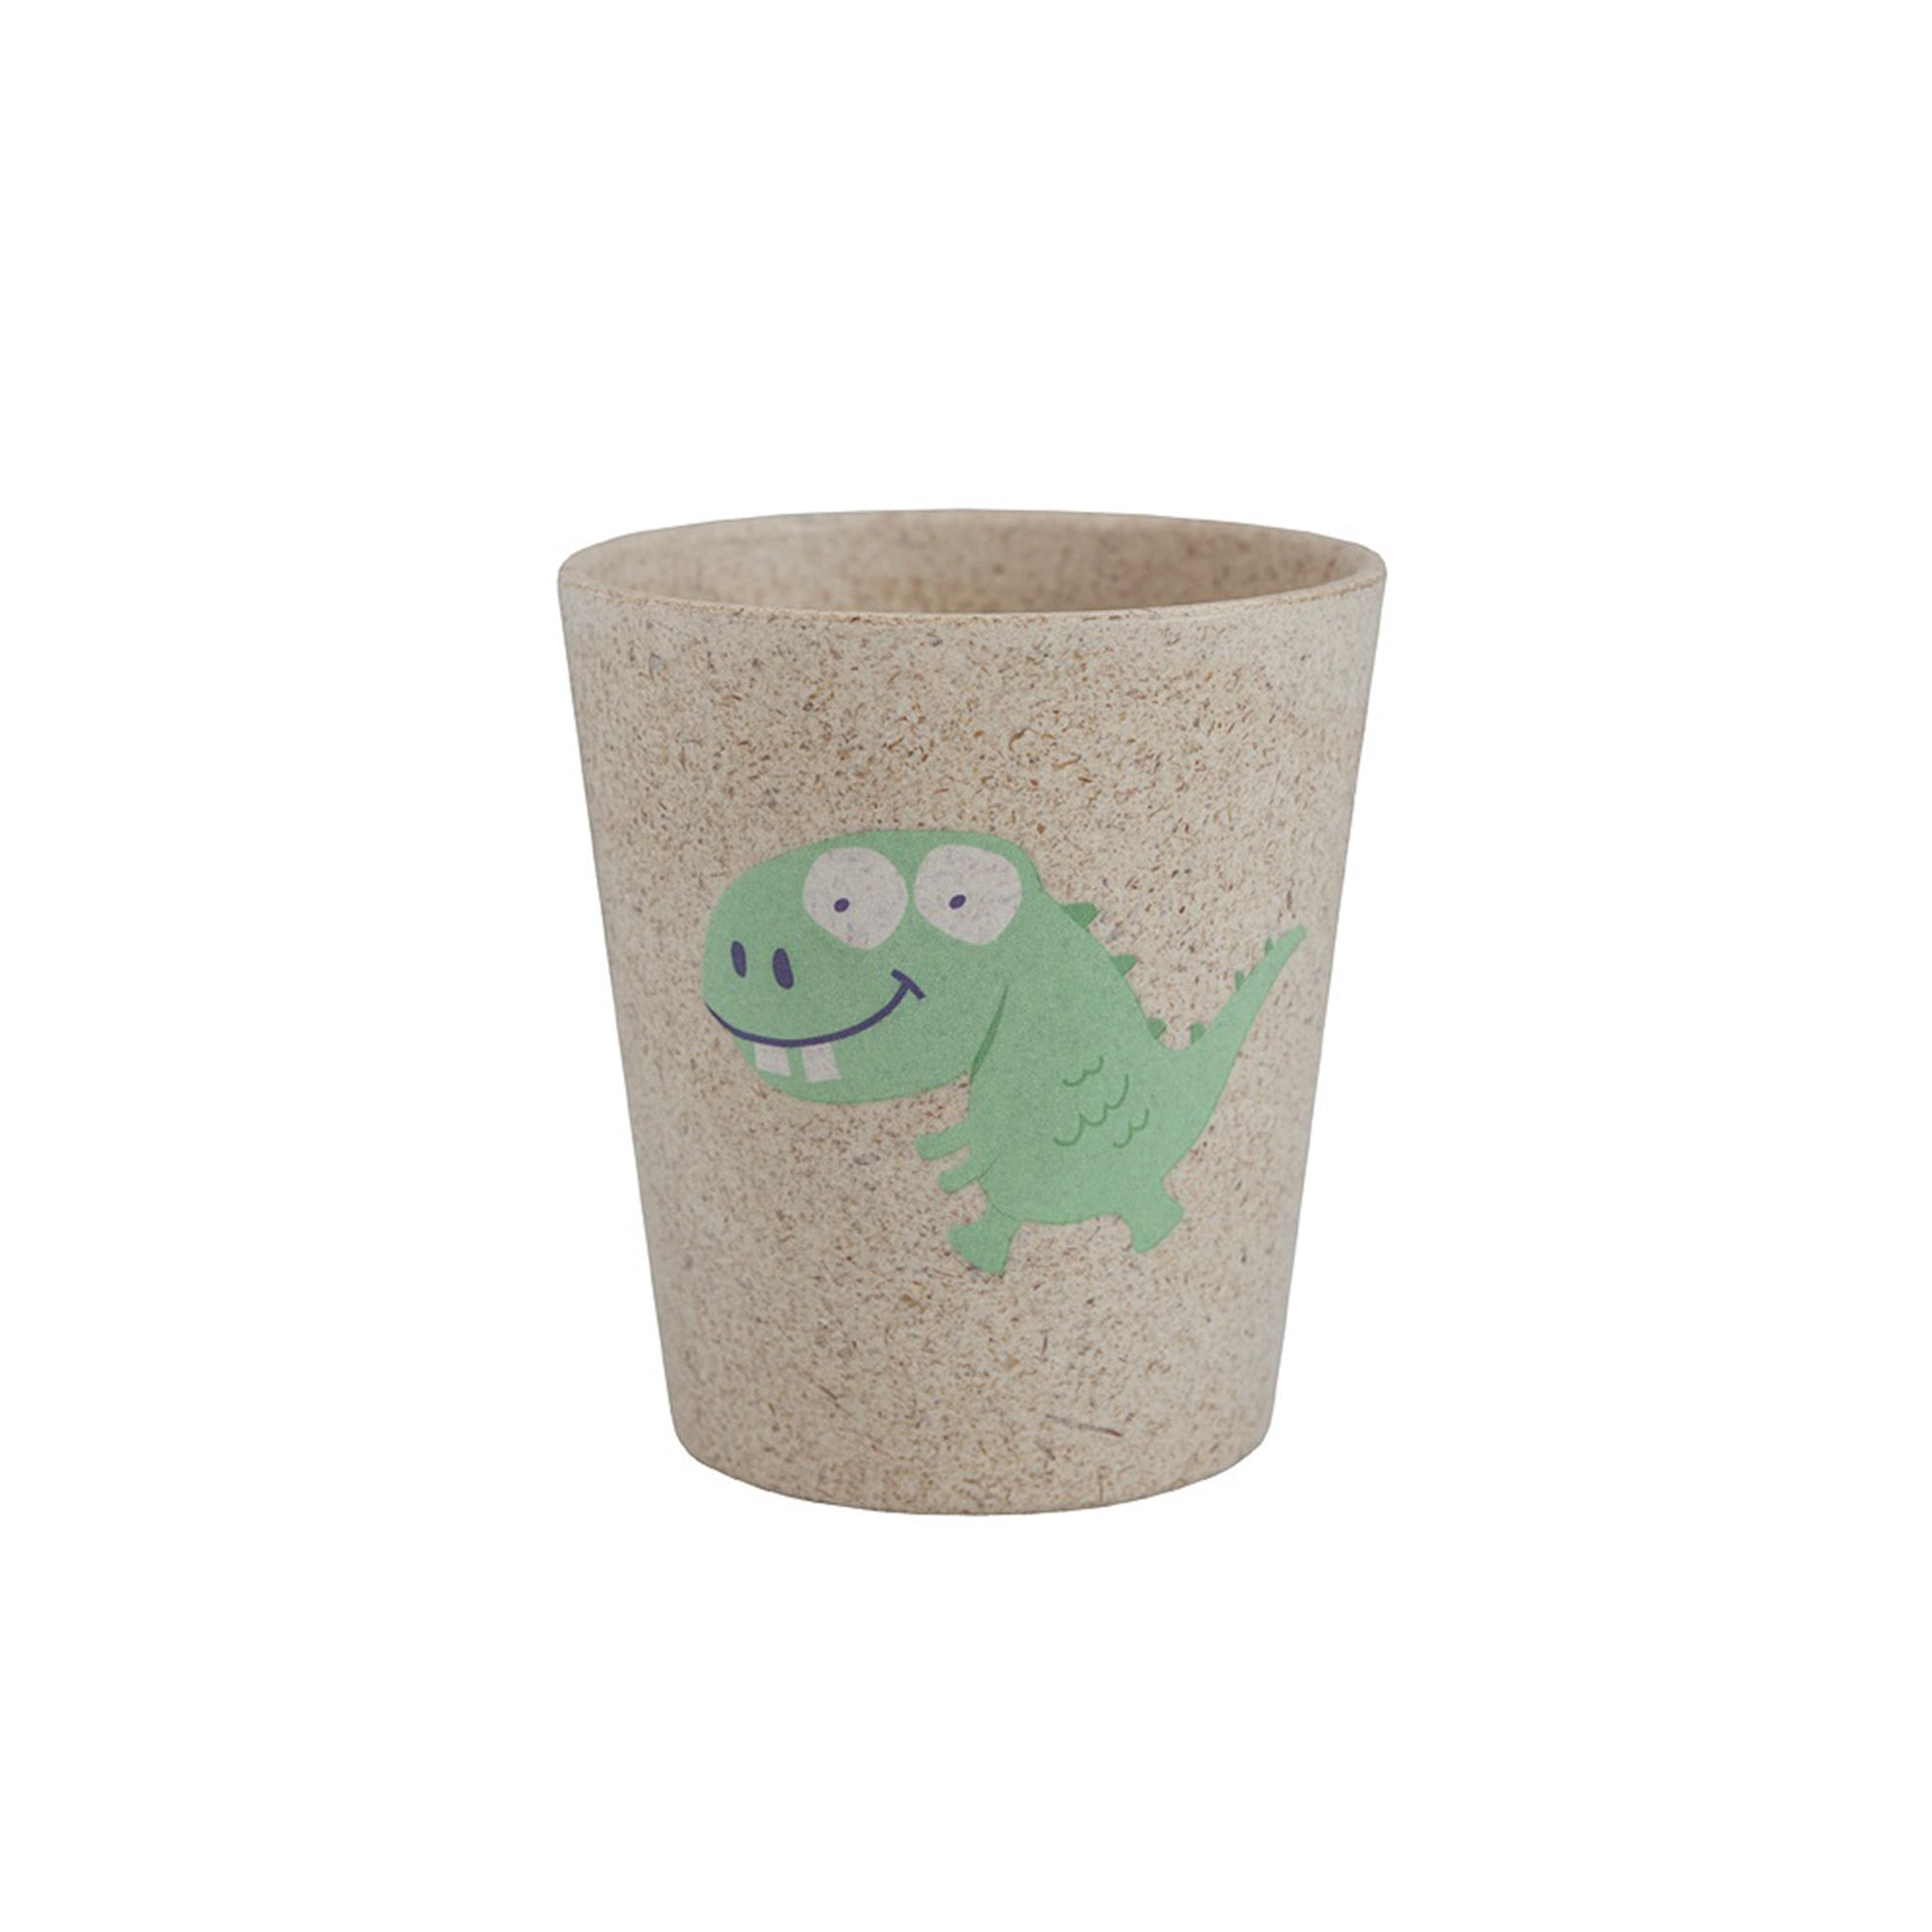 Jack and Jill Rinse Cup Jack n Jill Toothbrushes Dinosaur at Little Earth Nest Eco Shop